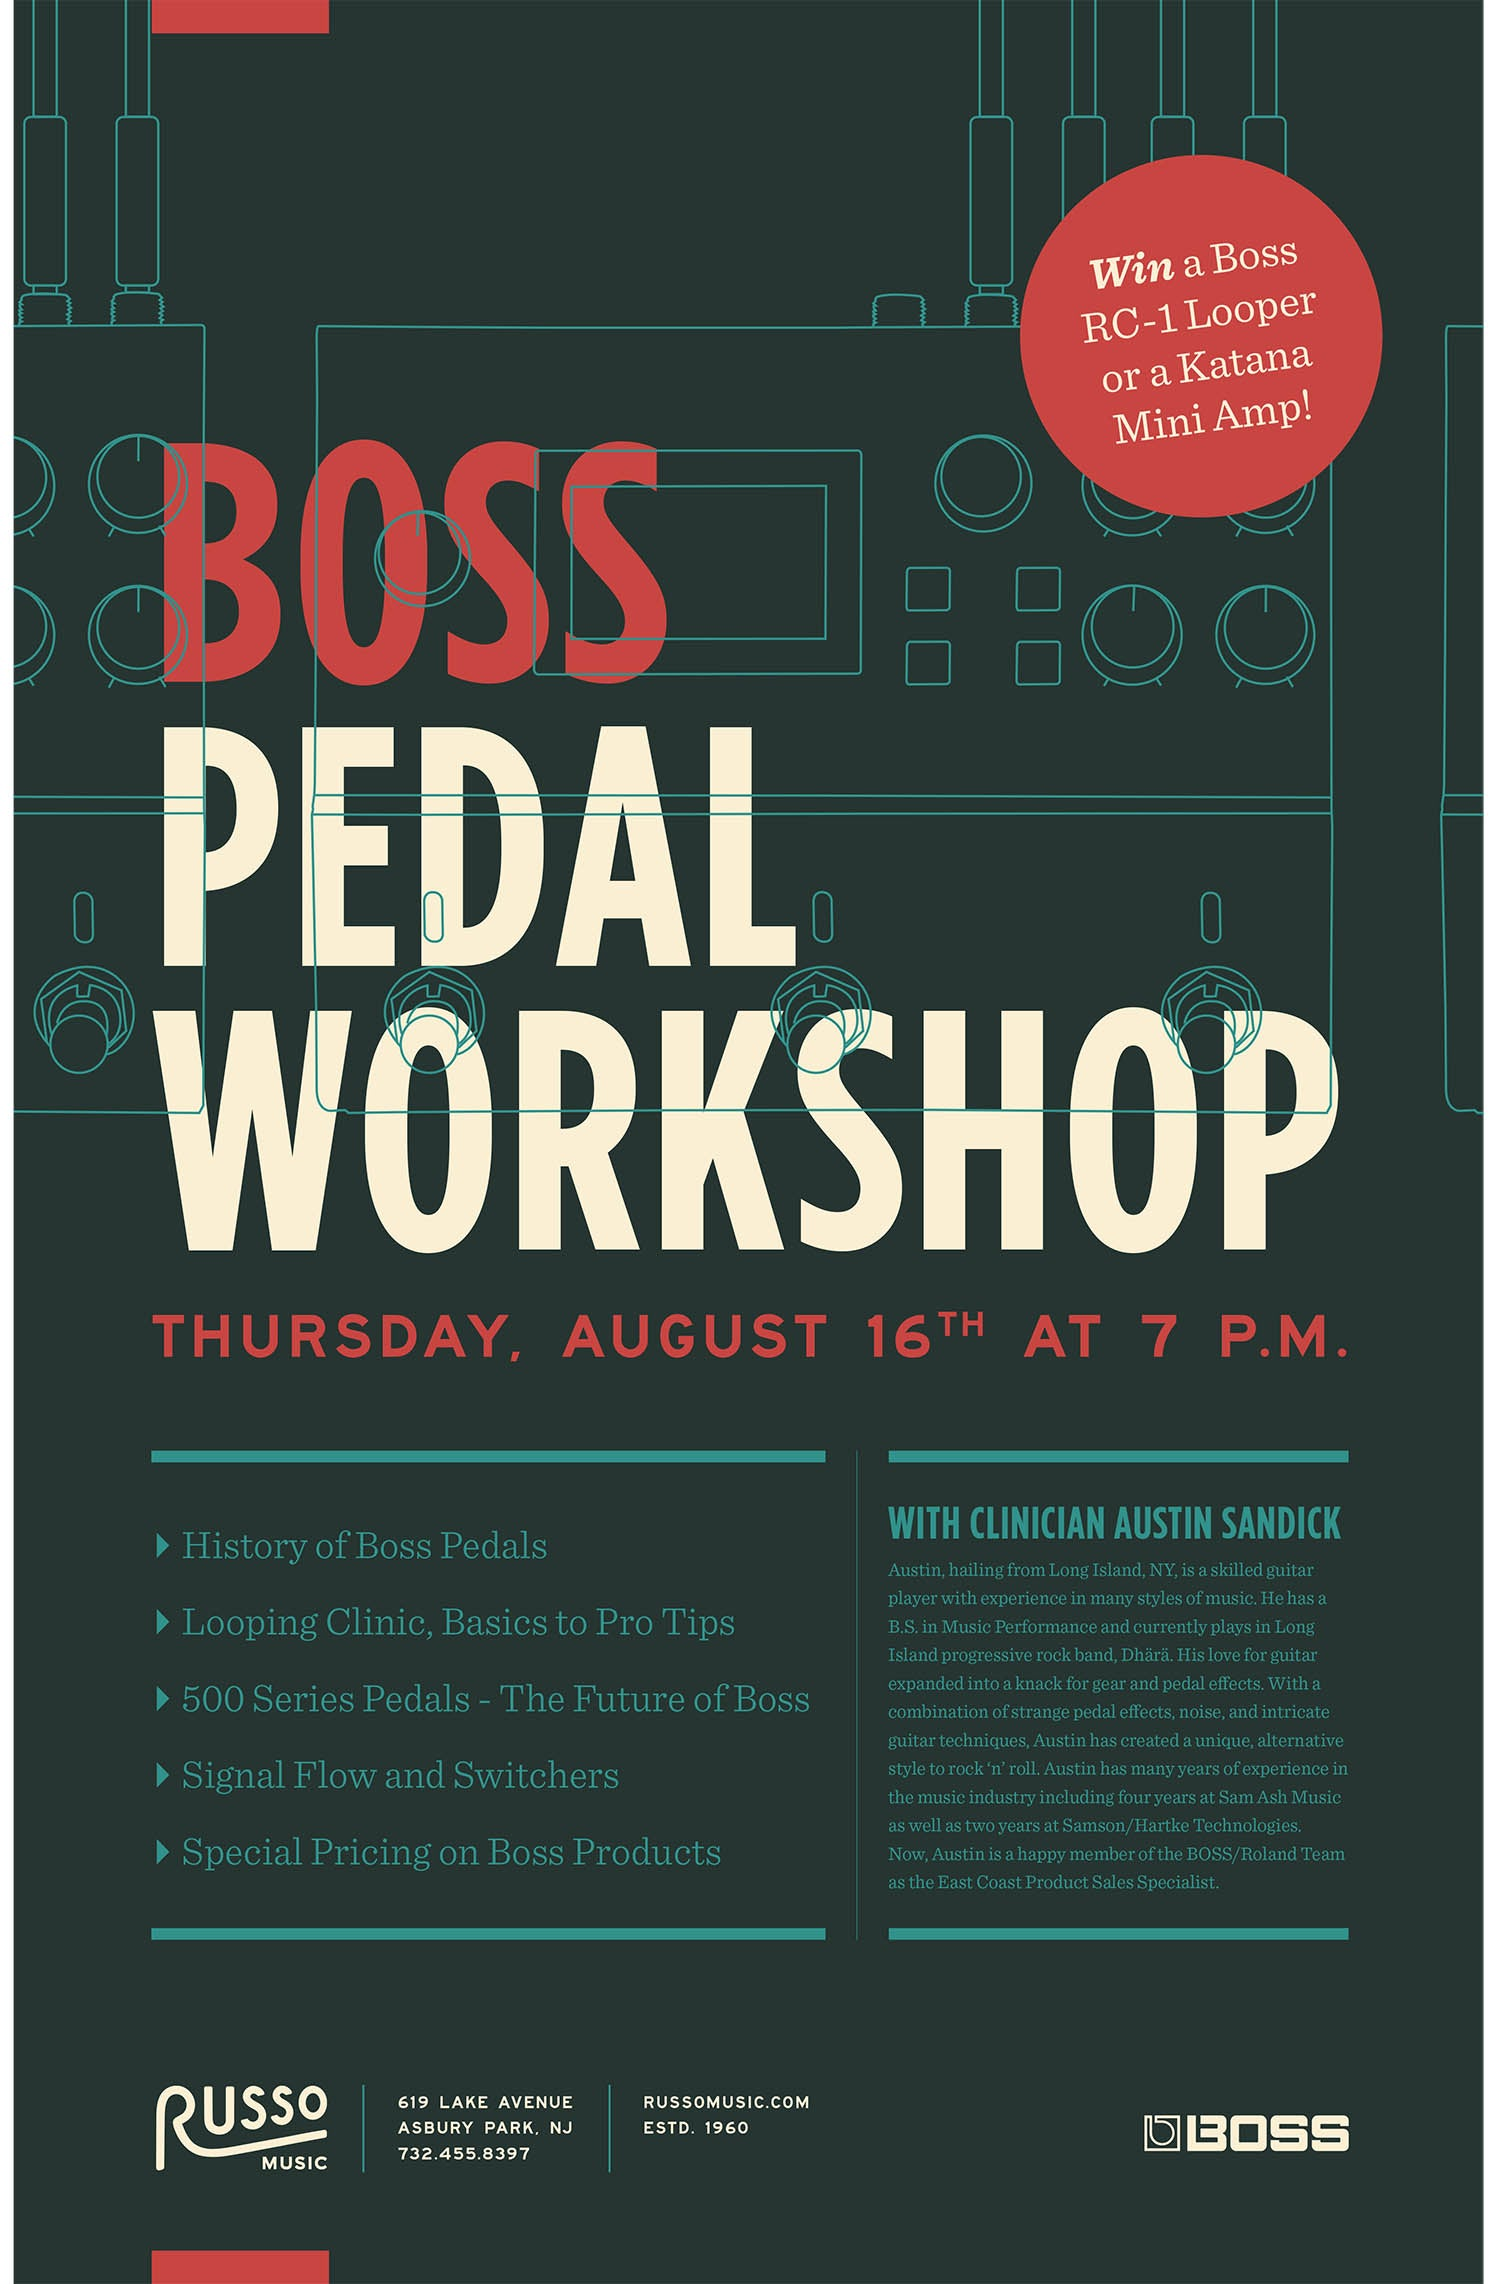 Boss Pedal Workshop